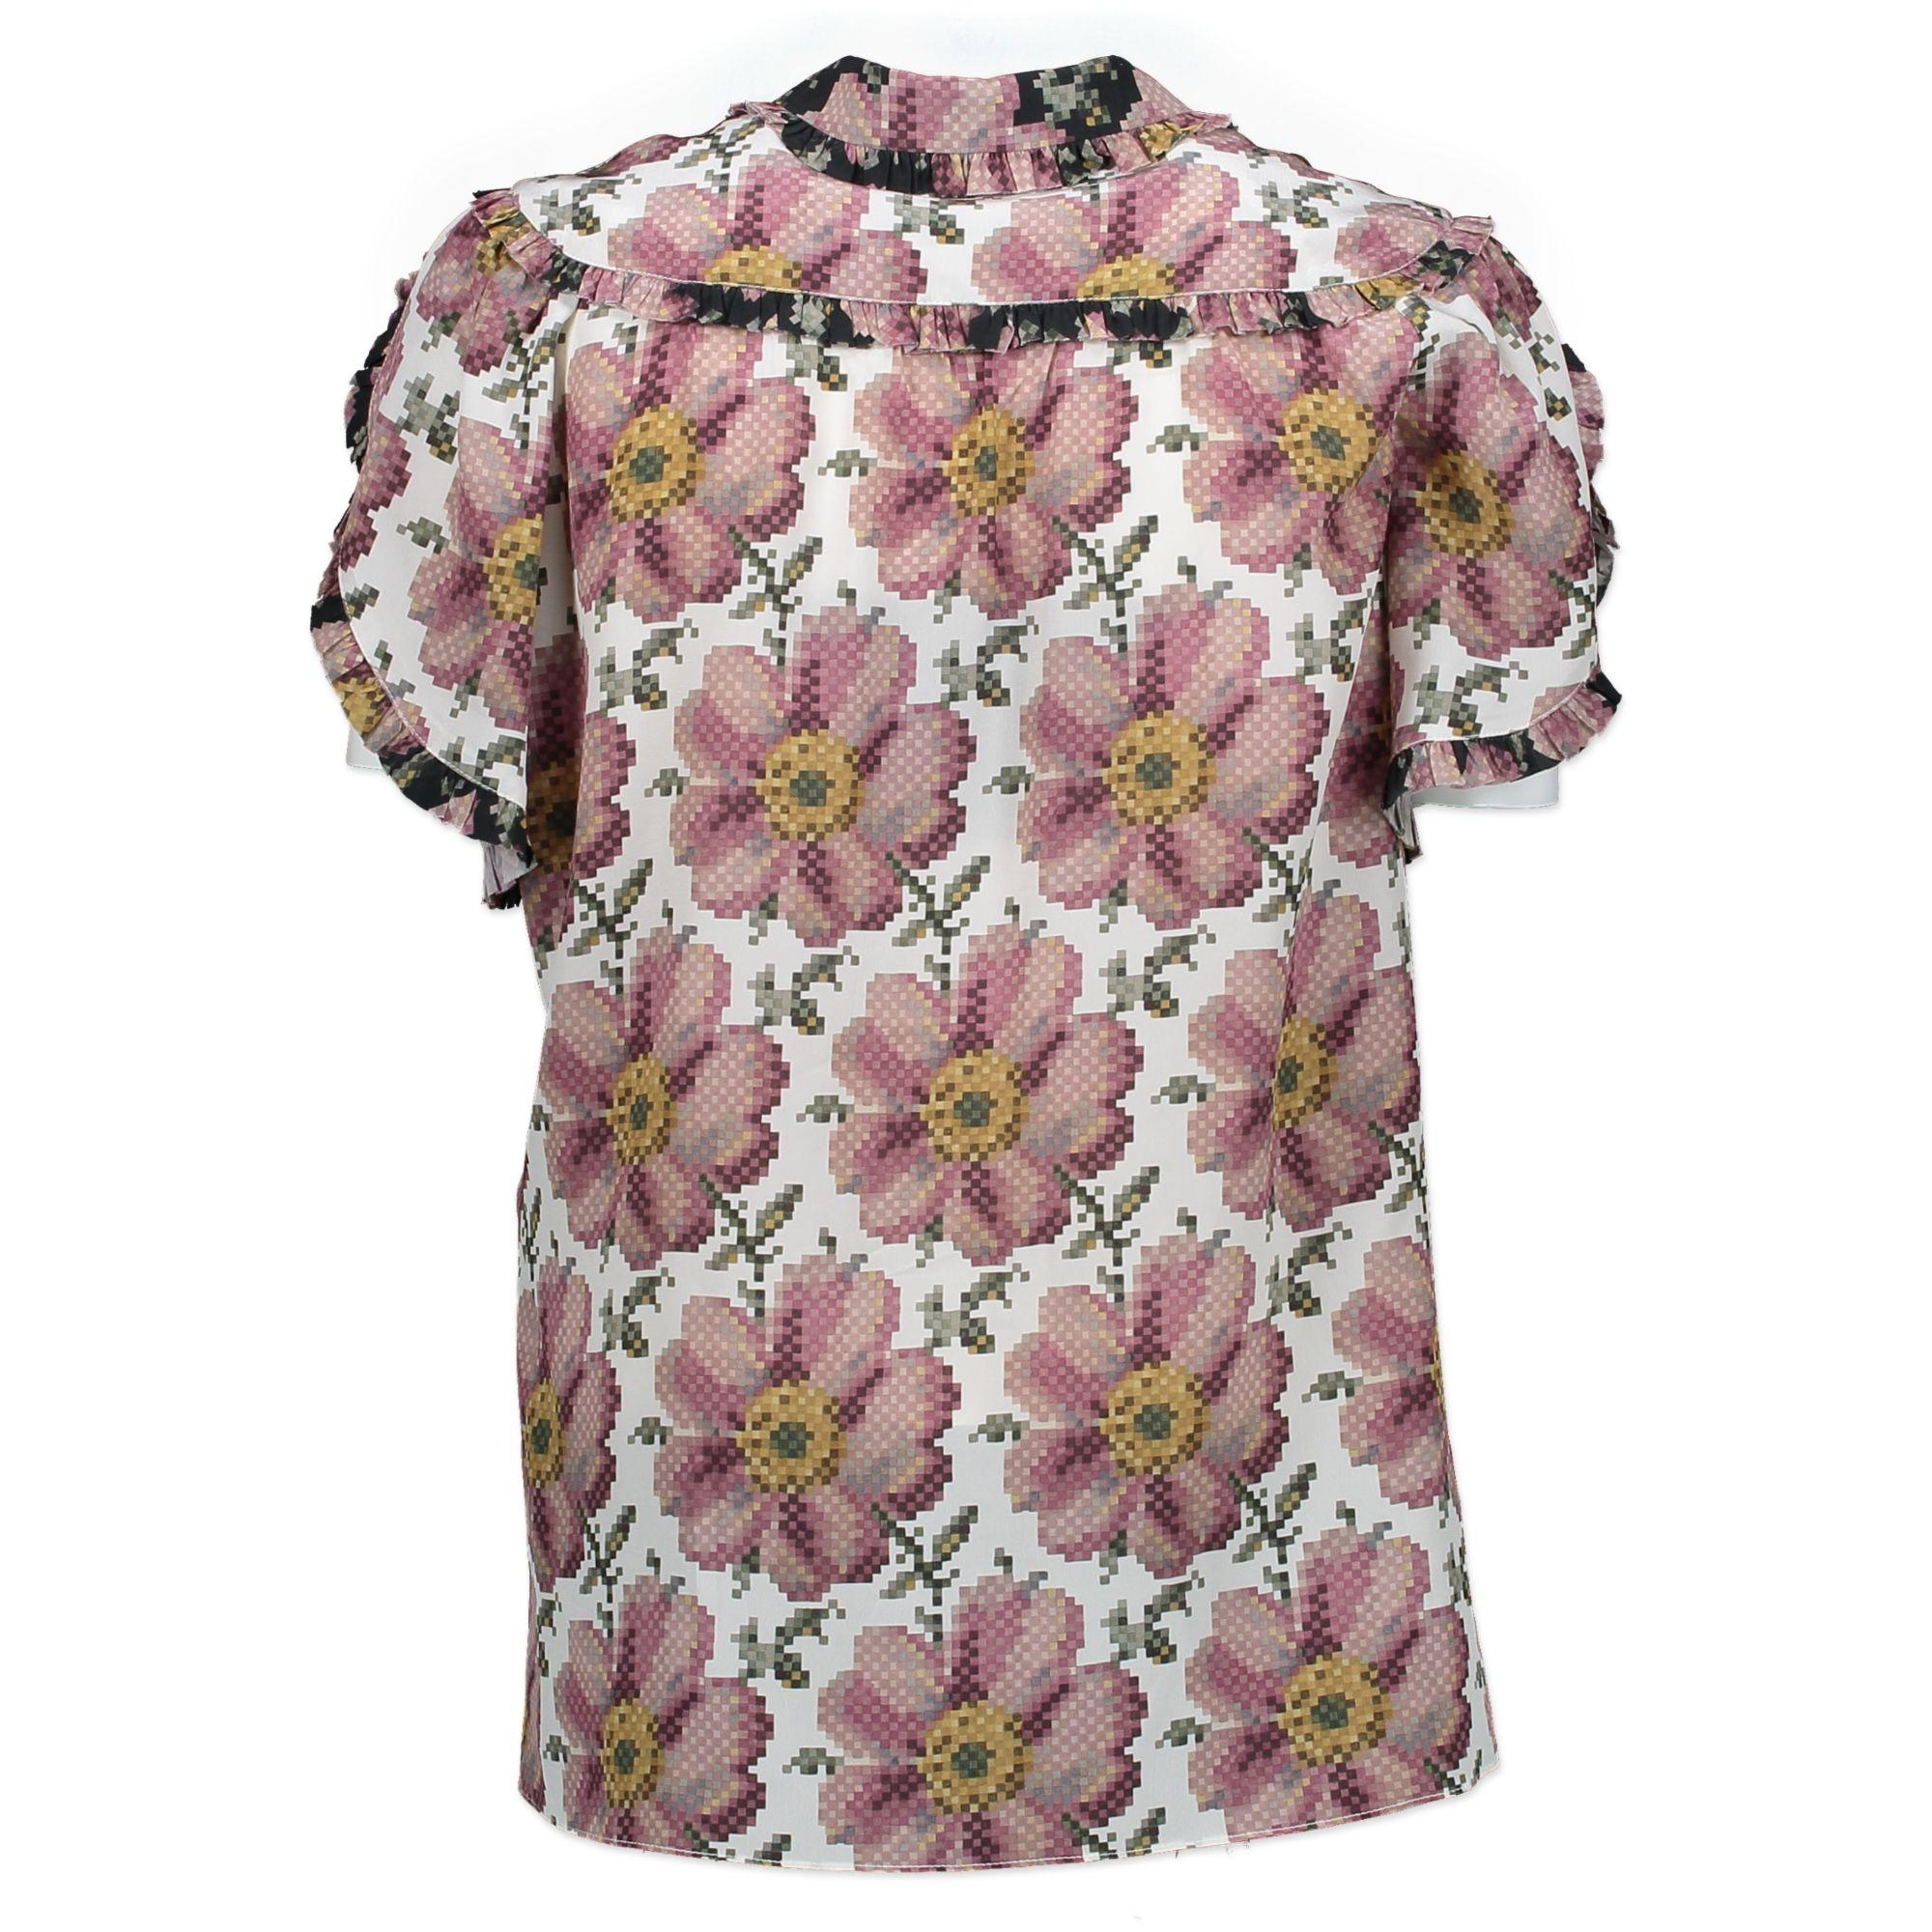 1c0f219a8 Gucci Short Sleeve Printed Blouse - Size IT40 For Sale at 1stdibs